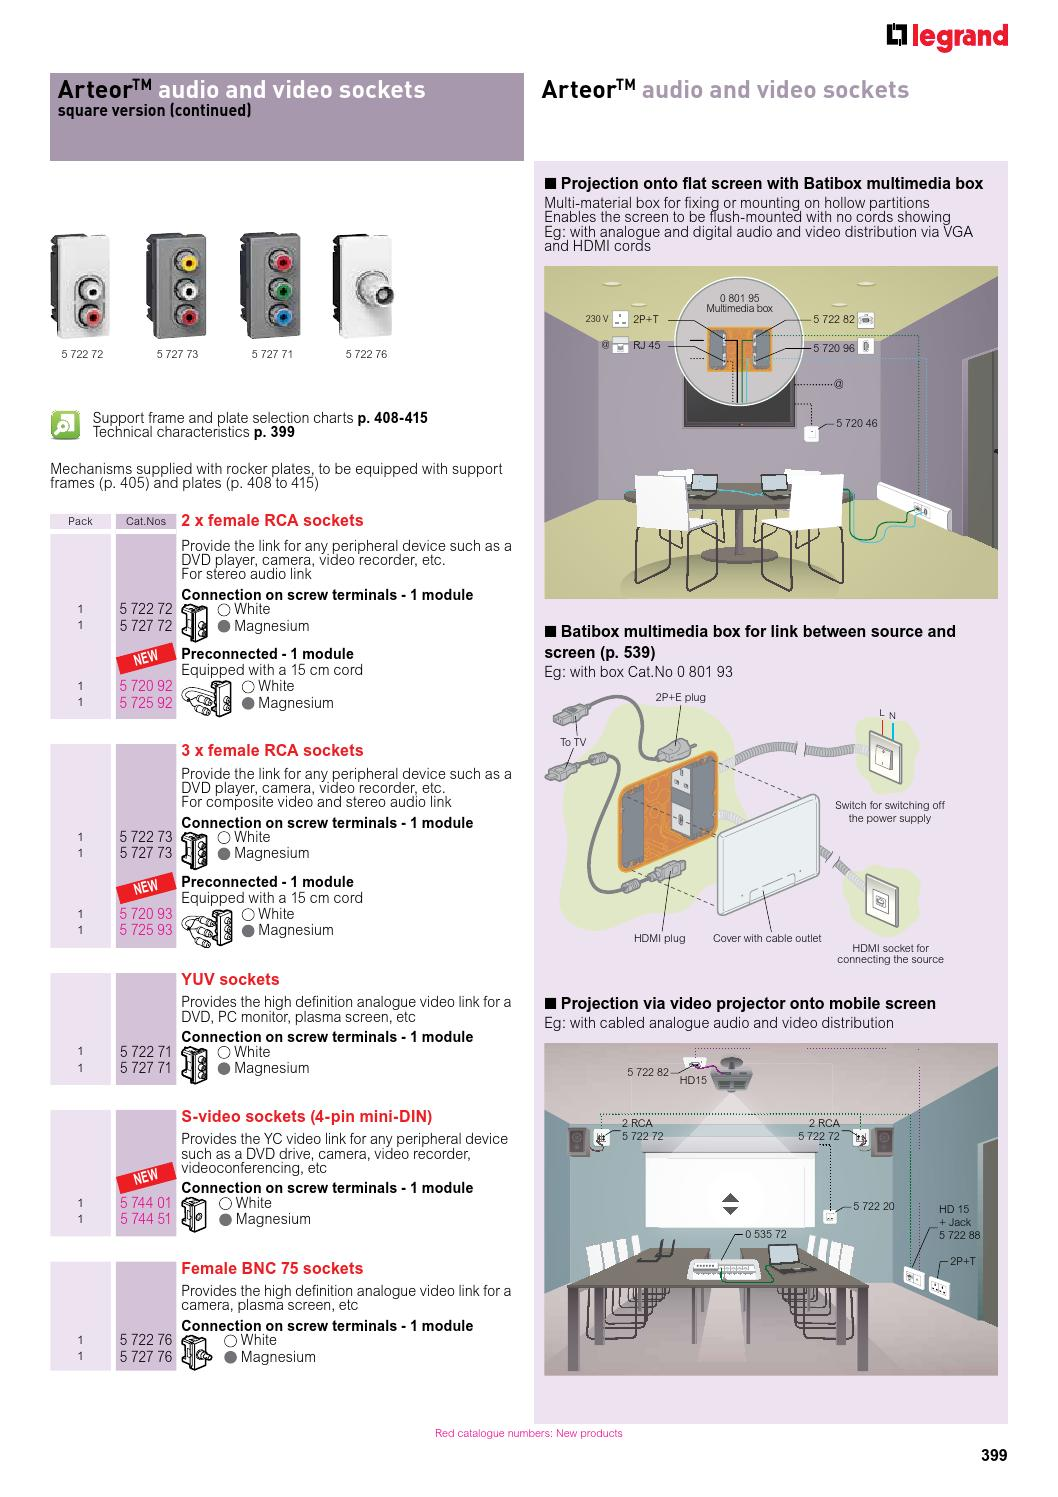 legrand emergency lighting test switch wiring diagram telephone socket australia alarm great installation of gulf general catalogue part 3 by sentor electrical issuu rh com le grand diagrams rh4fbl3ptc miro